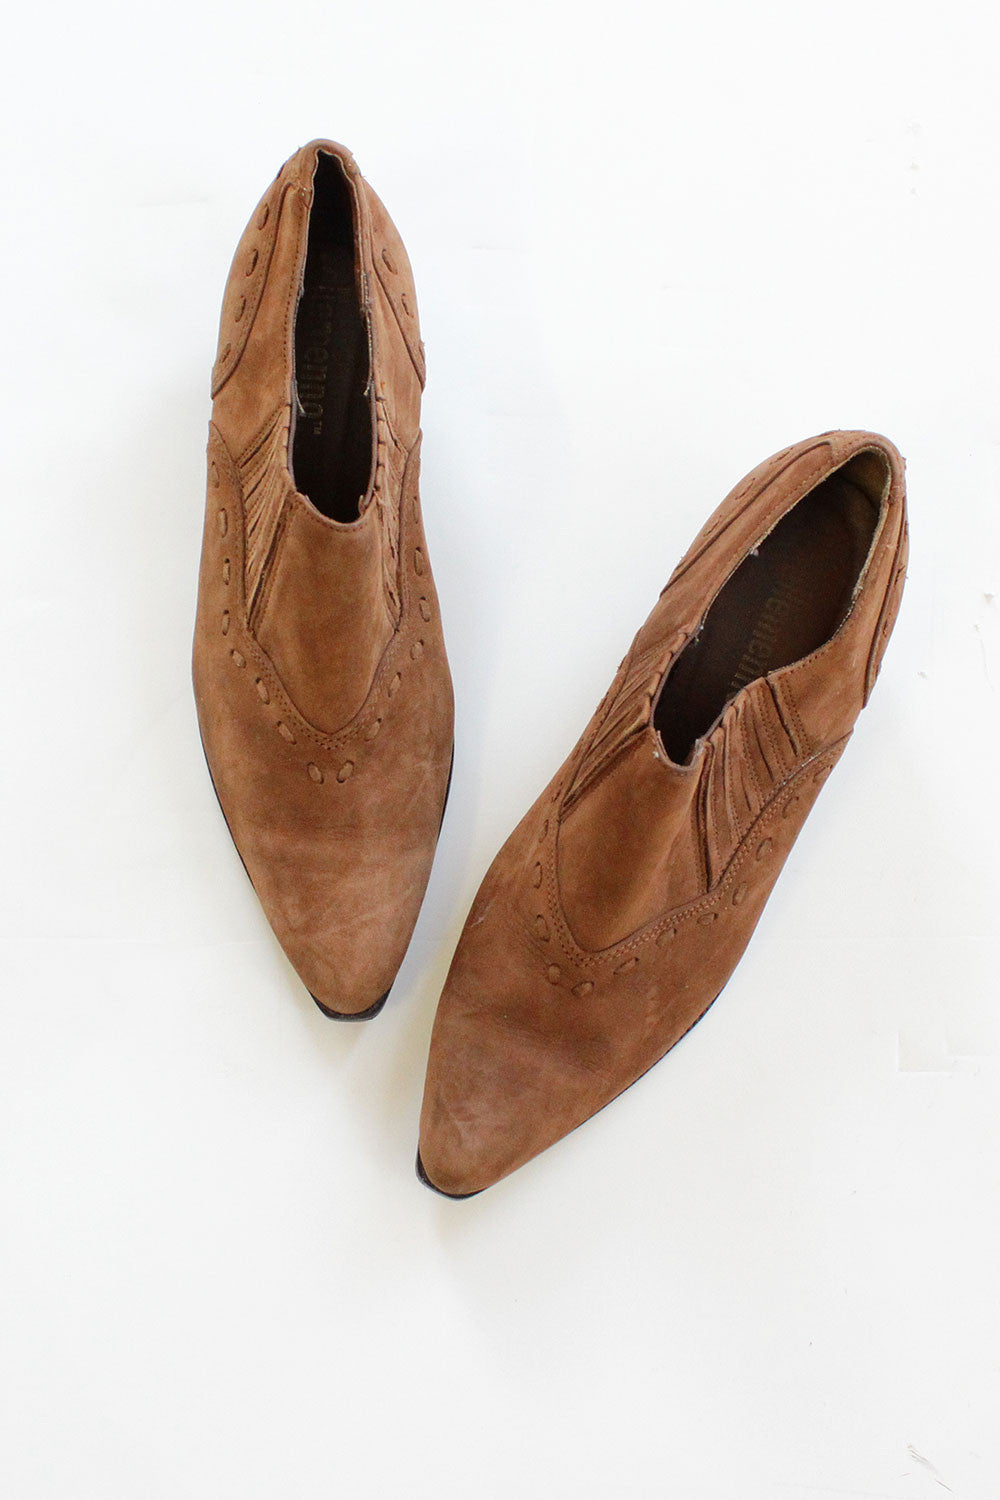 Cinnamon Brown Western Booties 7 1/2